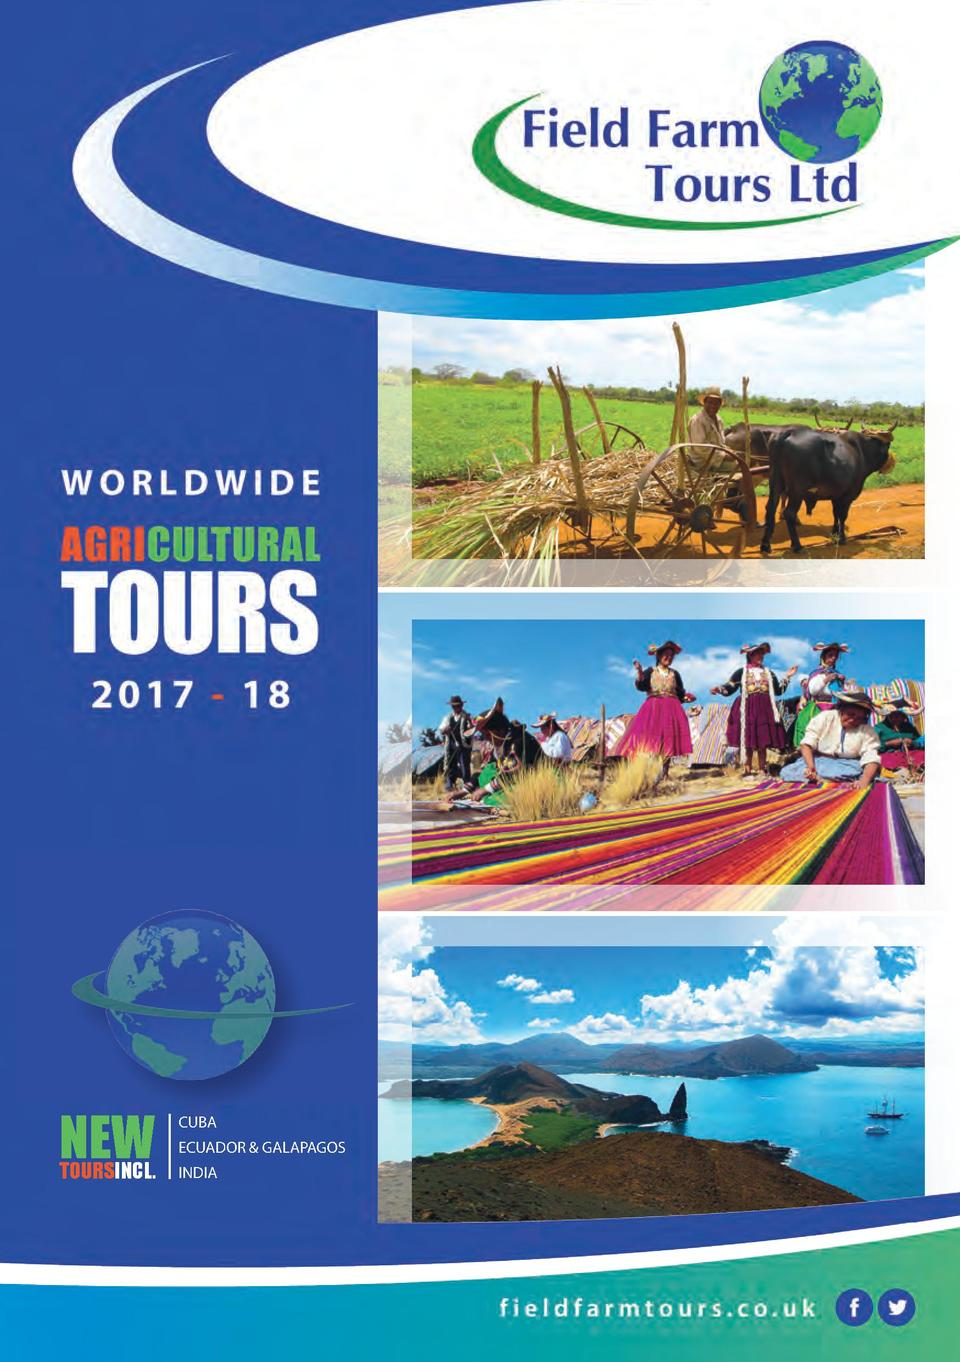 NEW  TOURSINCL.  CUBA ECUADOR   GALAPAGOS INDIA  1